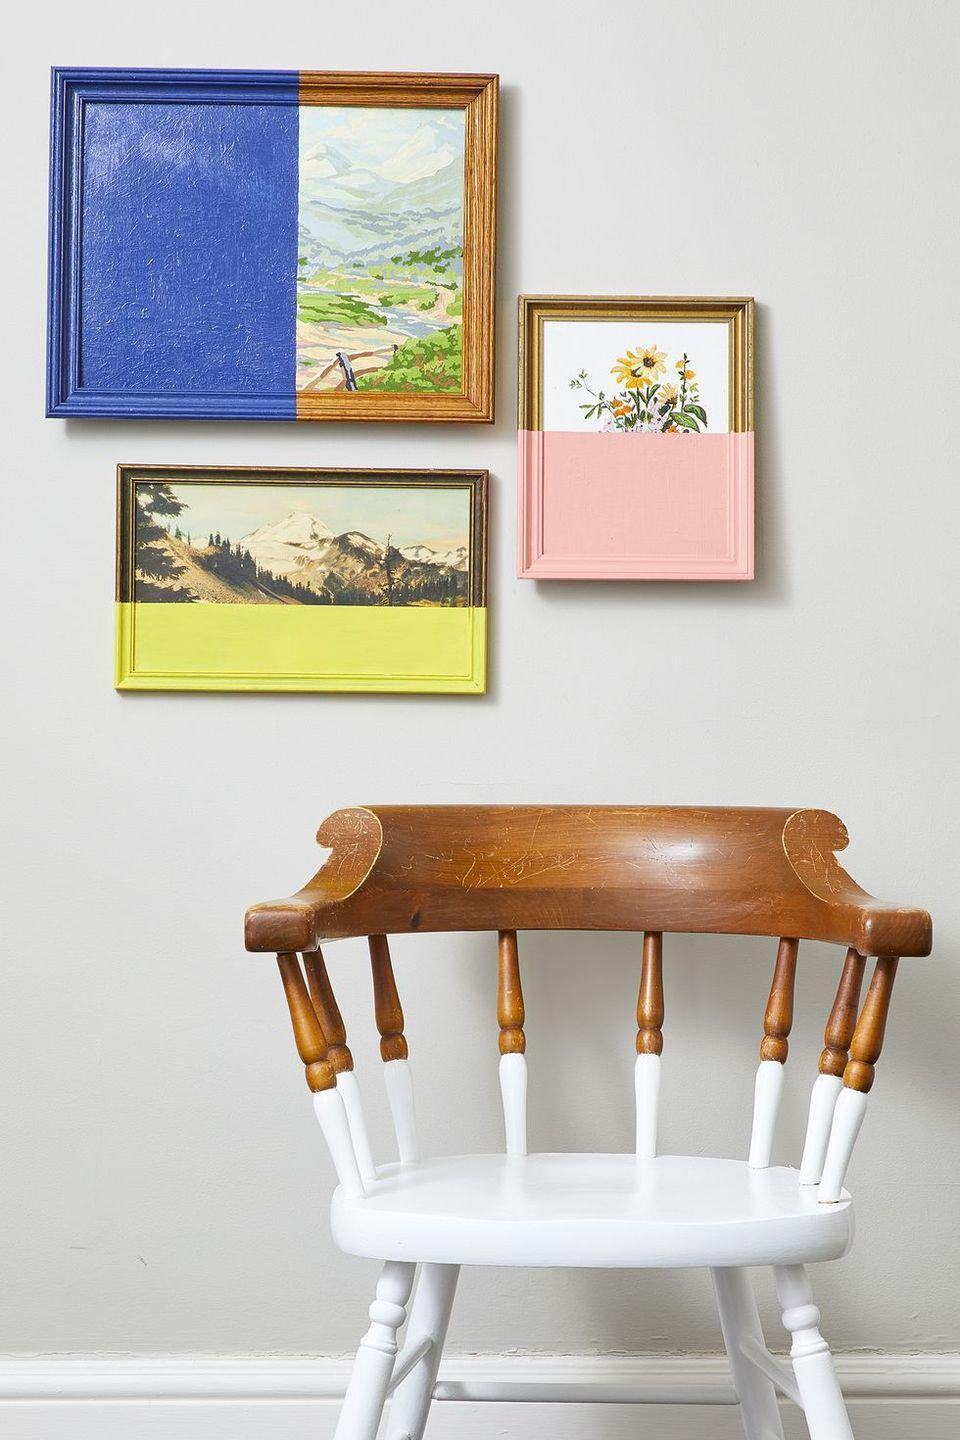 """<p>Go halfsies on paint in a variety of coordinating paint colors to turn garage-sale art into a bold colorblock display. </p><p><strong>RELATED: </strong><a href=""""https://www.goodhousekeeping.com/home/craft-ideas/how-to/g139/genius-upcycling-ideas/"""" rel=""""nofollow noopener"""" target=""""_blank"""" data-ylk=""""slk:Easy Trash-to-Treasure Crafts"""" class=""""link rapid-noclick-resp"""">Easy Trash-to-Treasure Crafts </a></p>"""